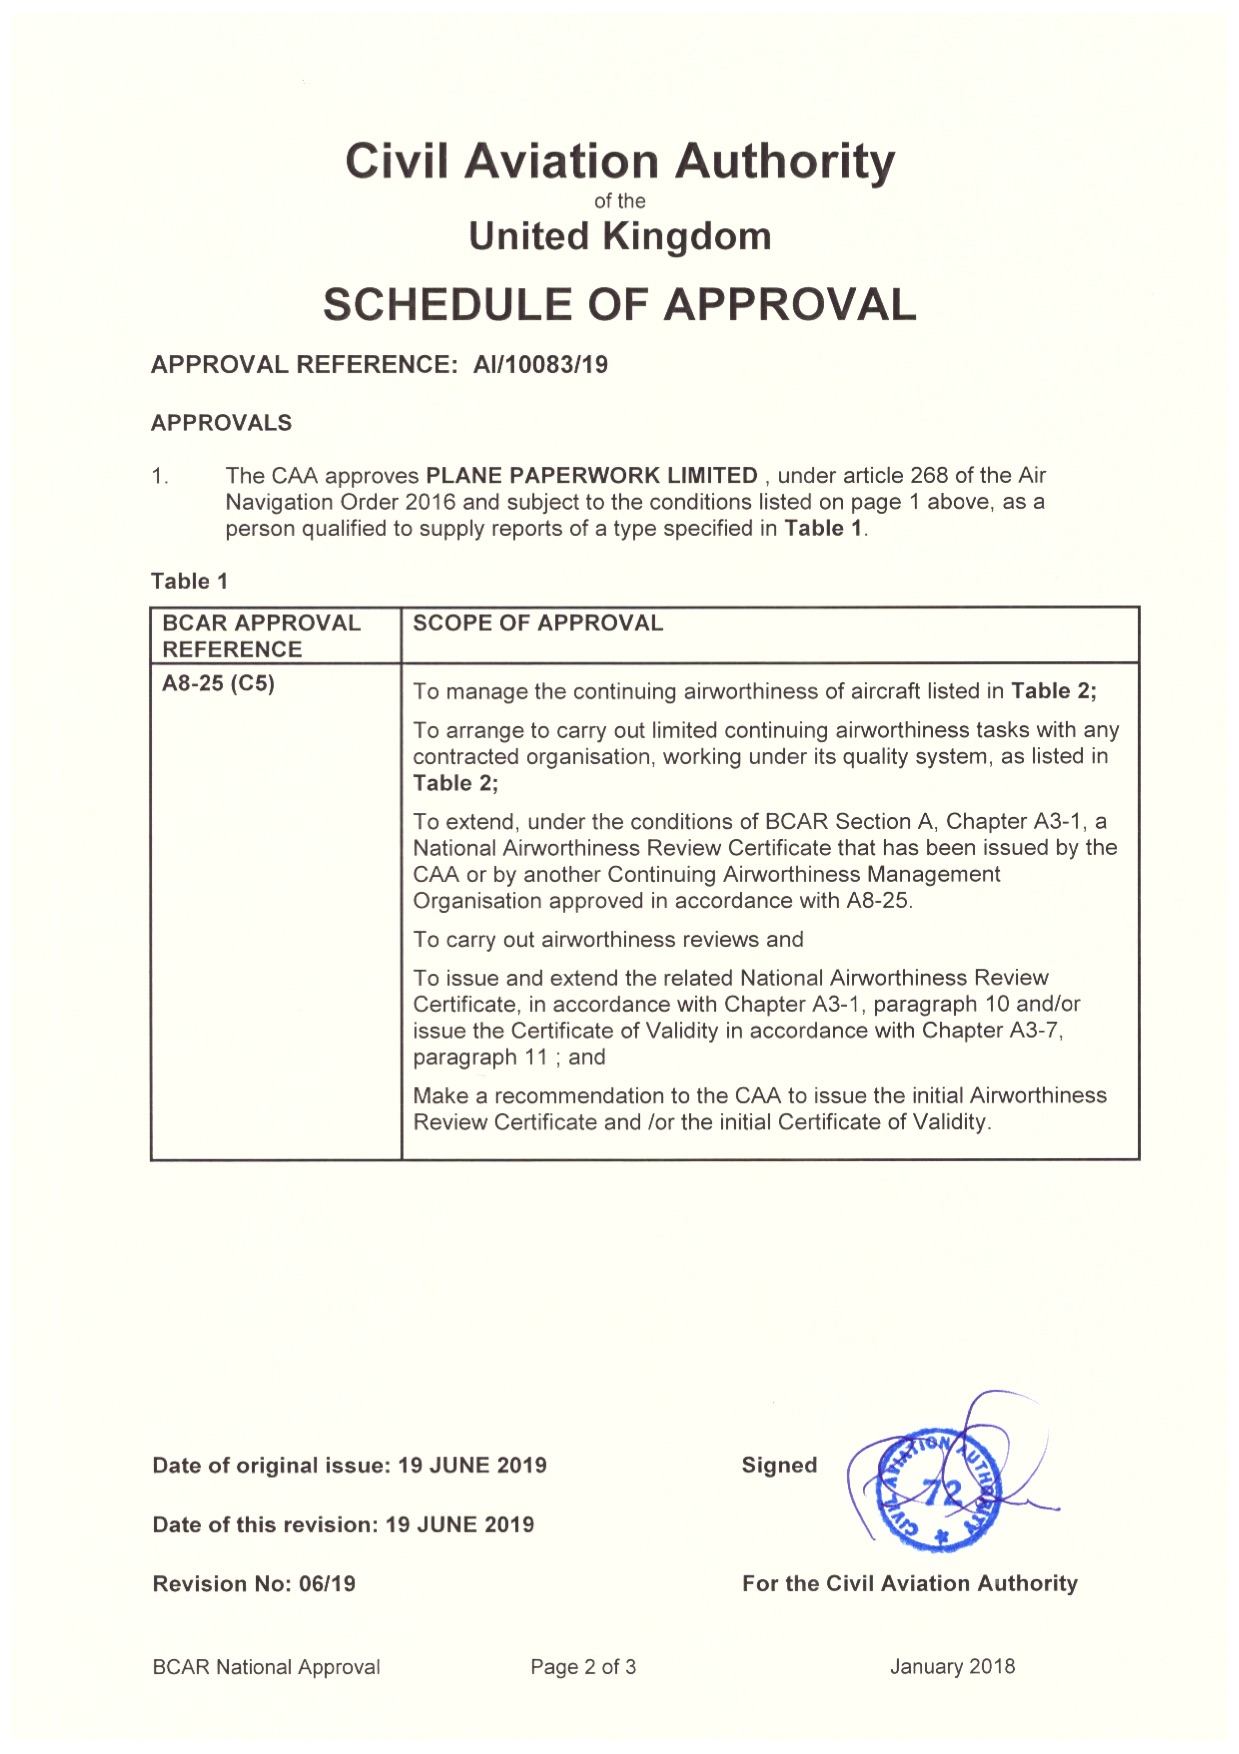 Eagle Aero Engineering Limited Approval